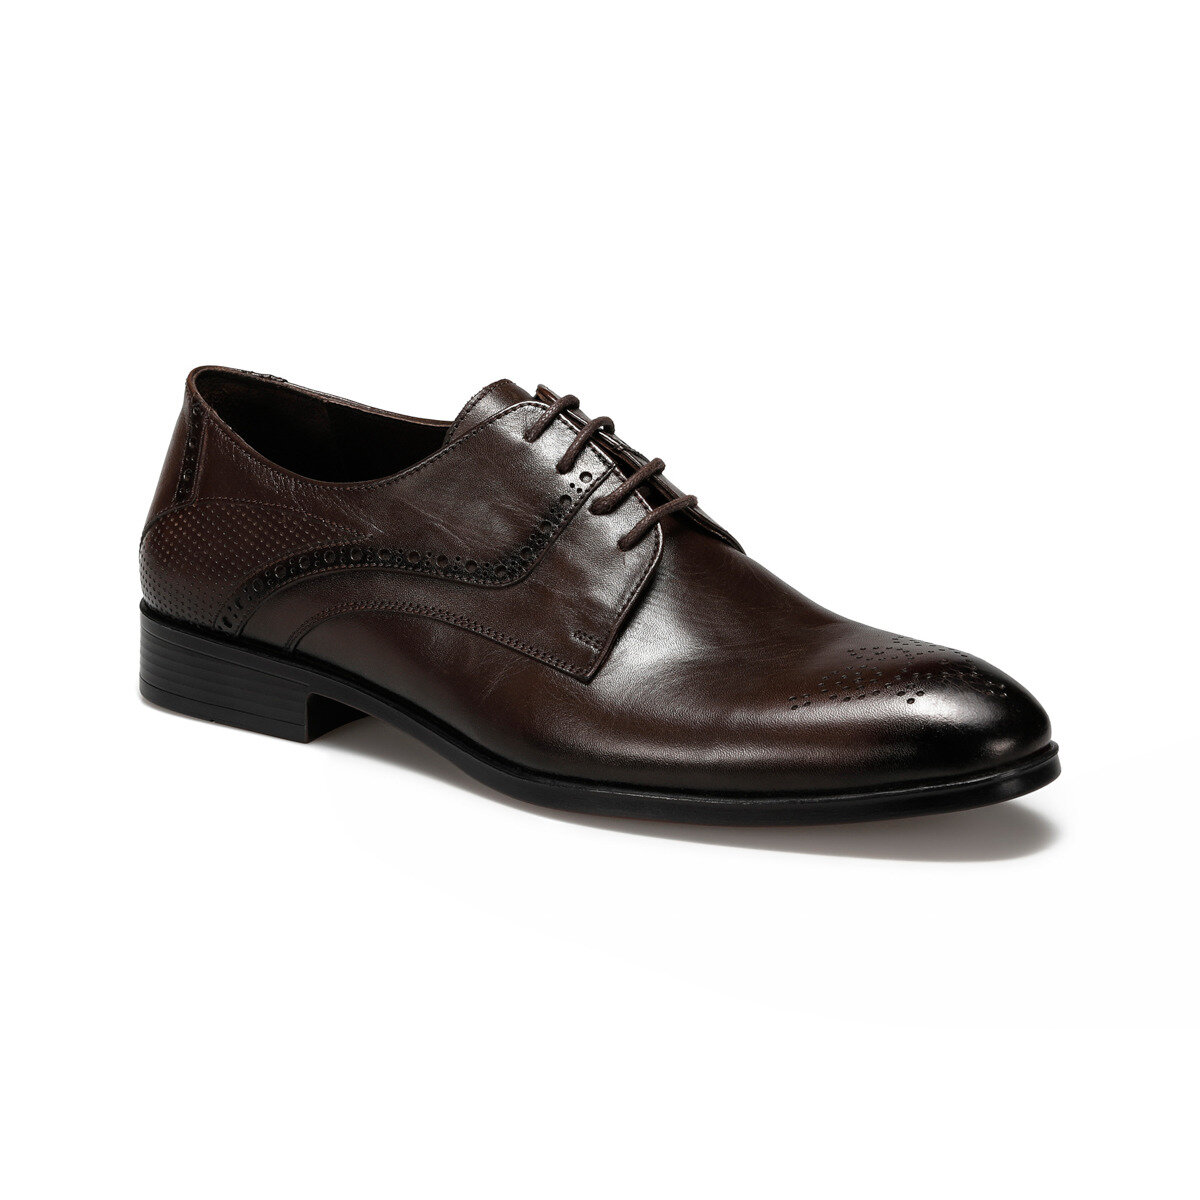 FLO ROLLING Brown Men Dress Shoes MERCEDES